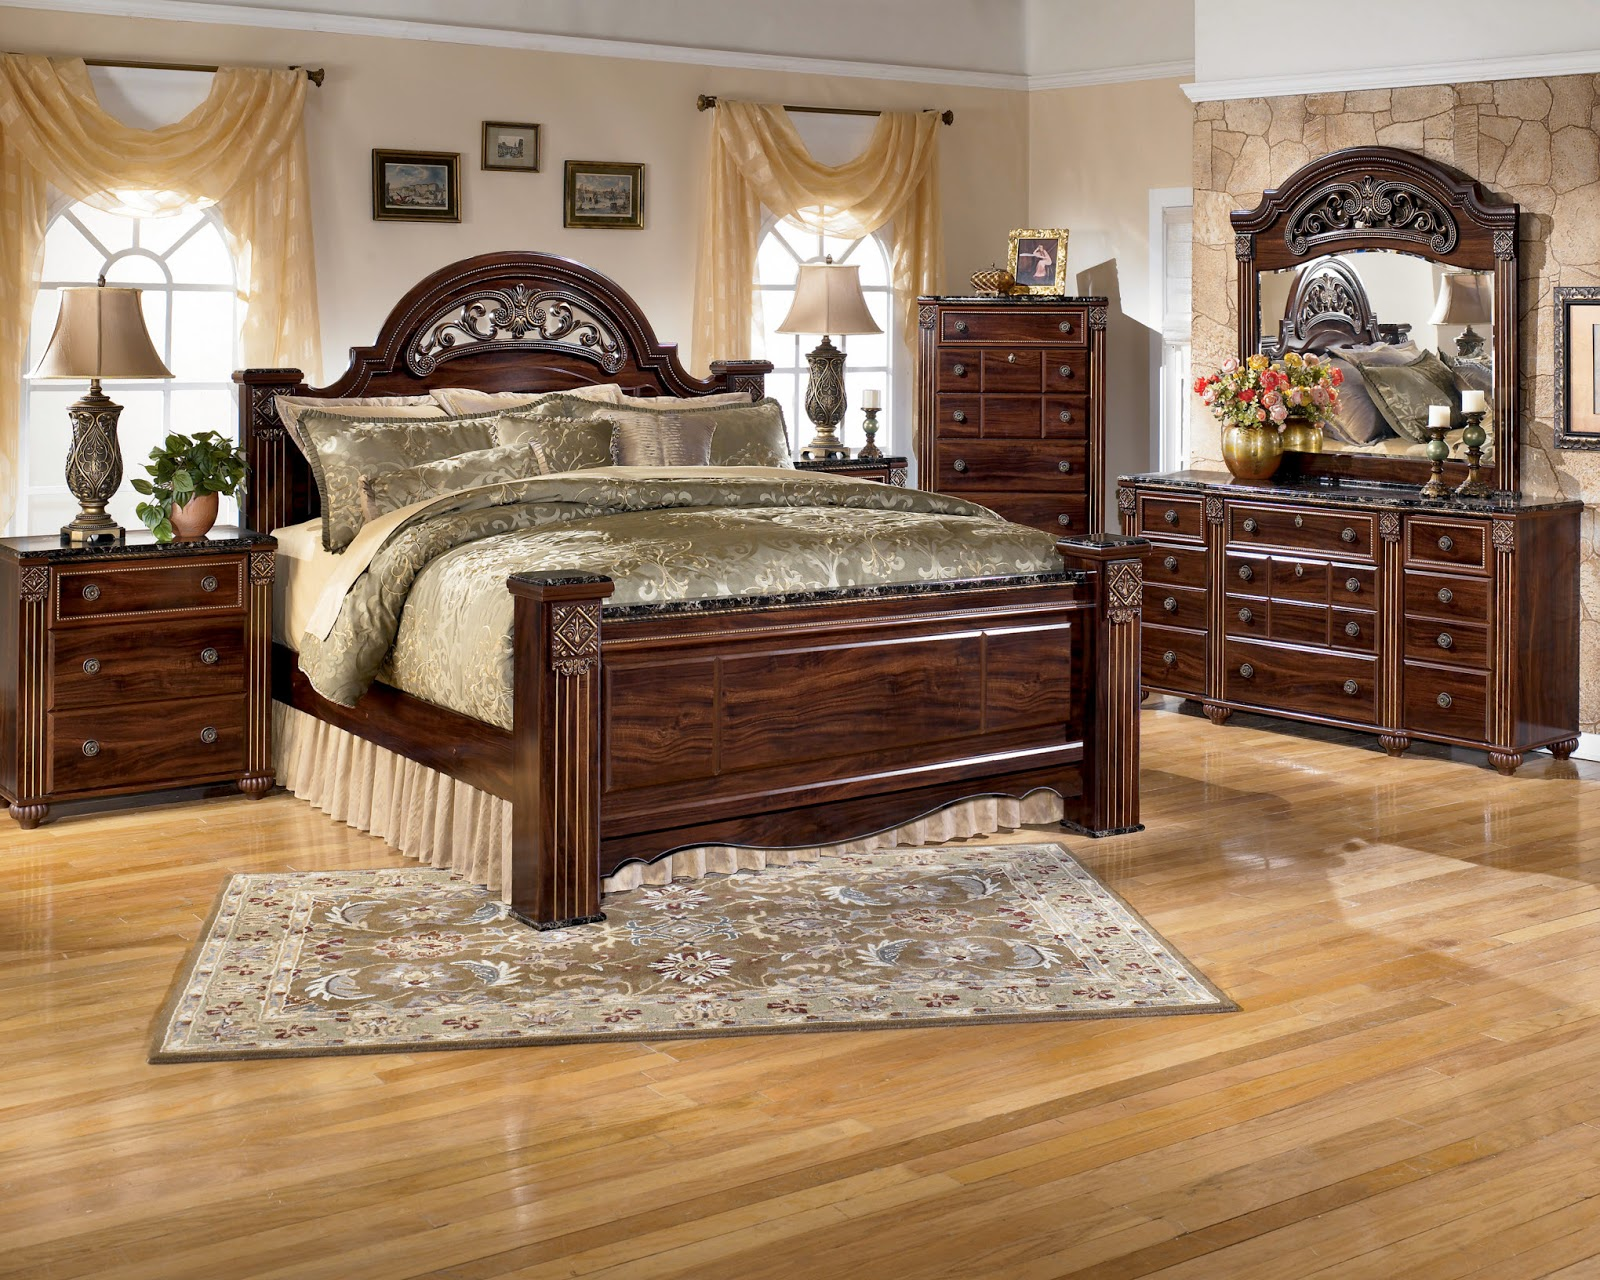 Mattress Pasadena Ashley Furniture Bedroom Sets On Sale Popular Interior House Ideas